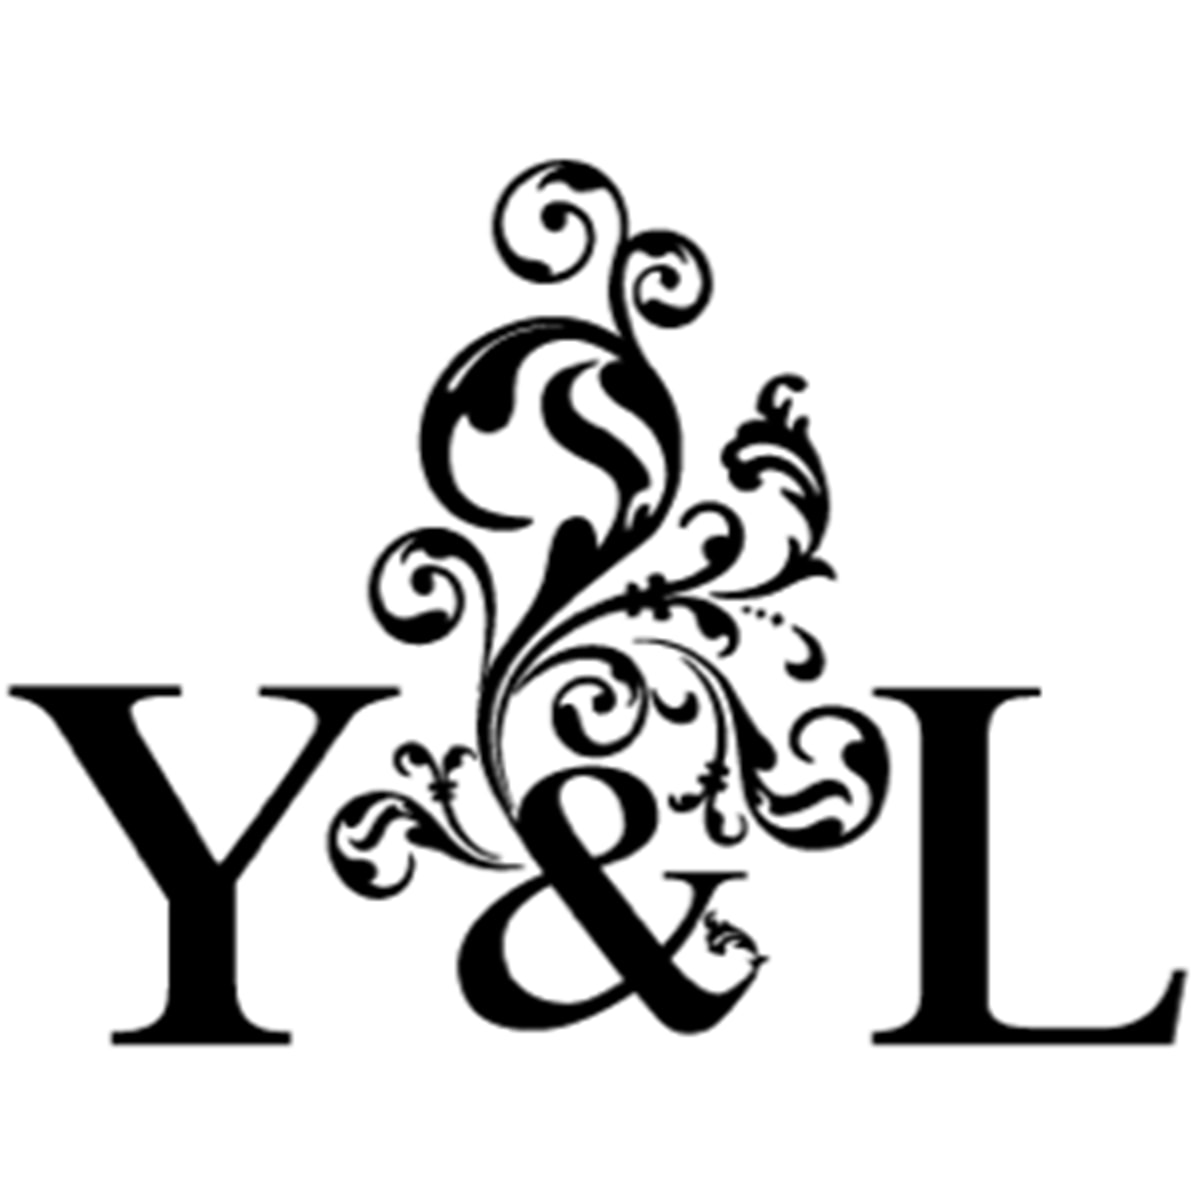 Y&L, Chinese company based in Beijing